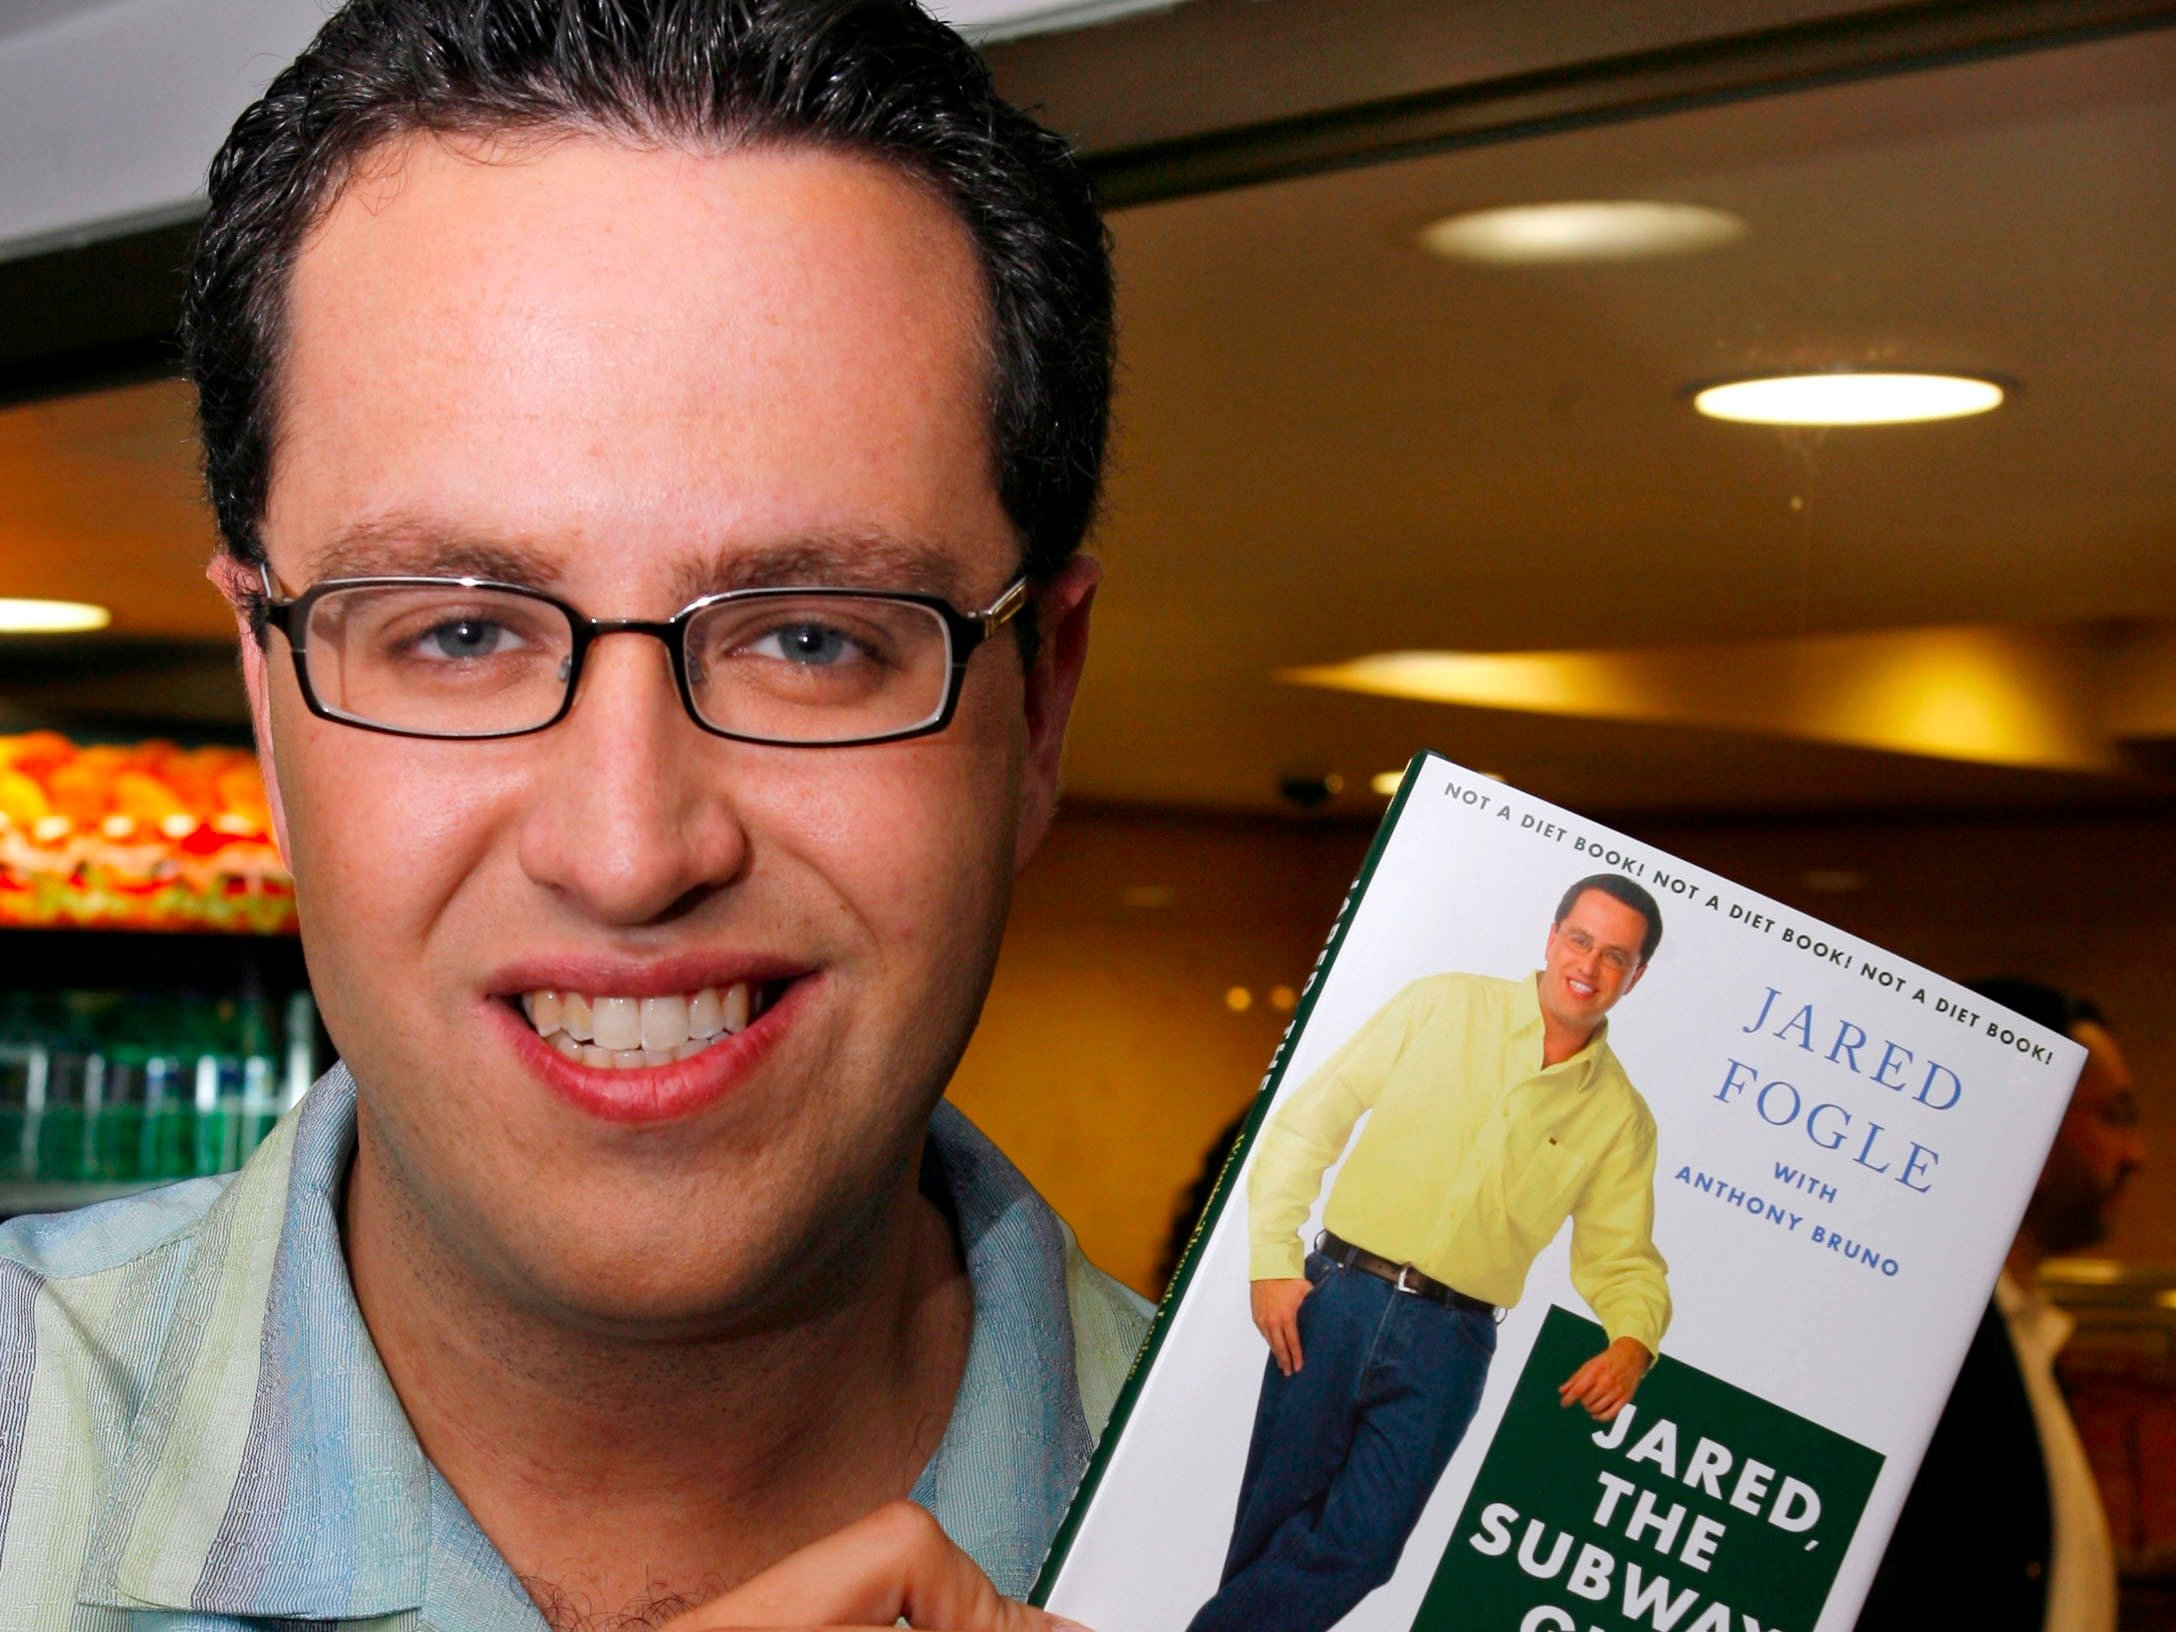 Jared fogle s attorneys asked a judge for leniency thursday saying